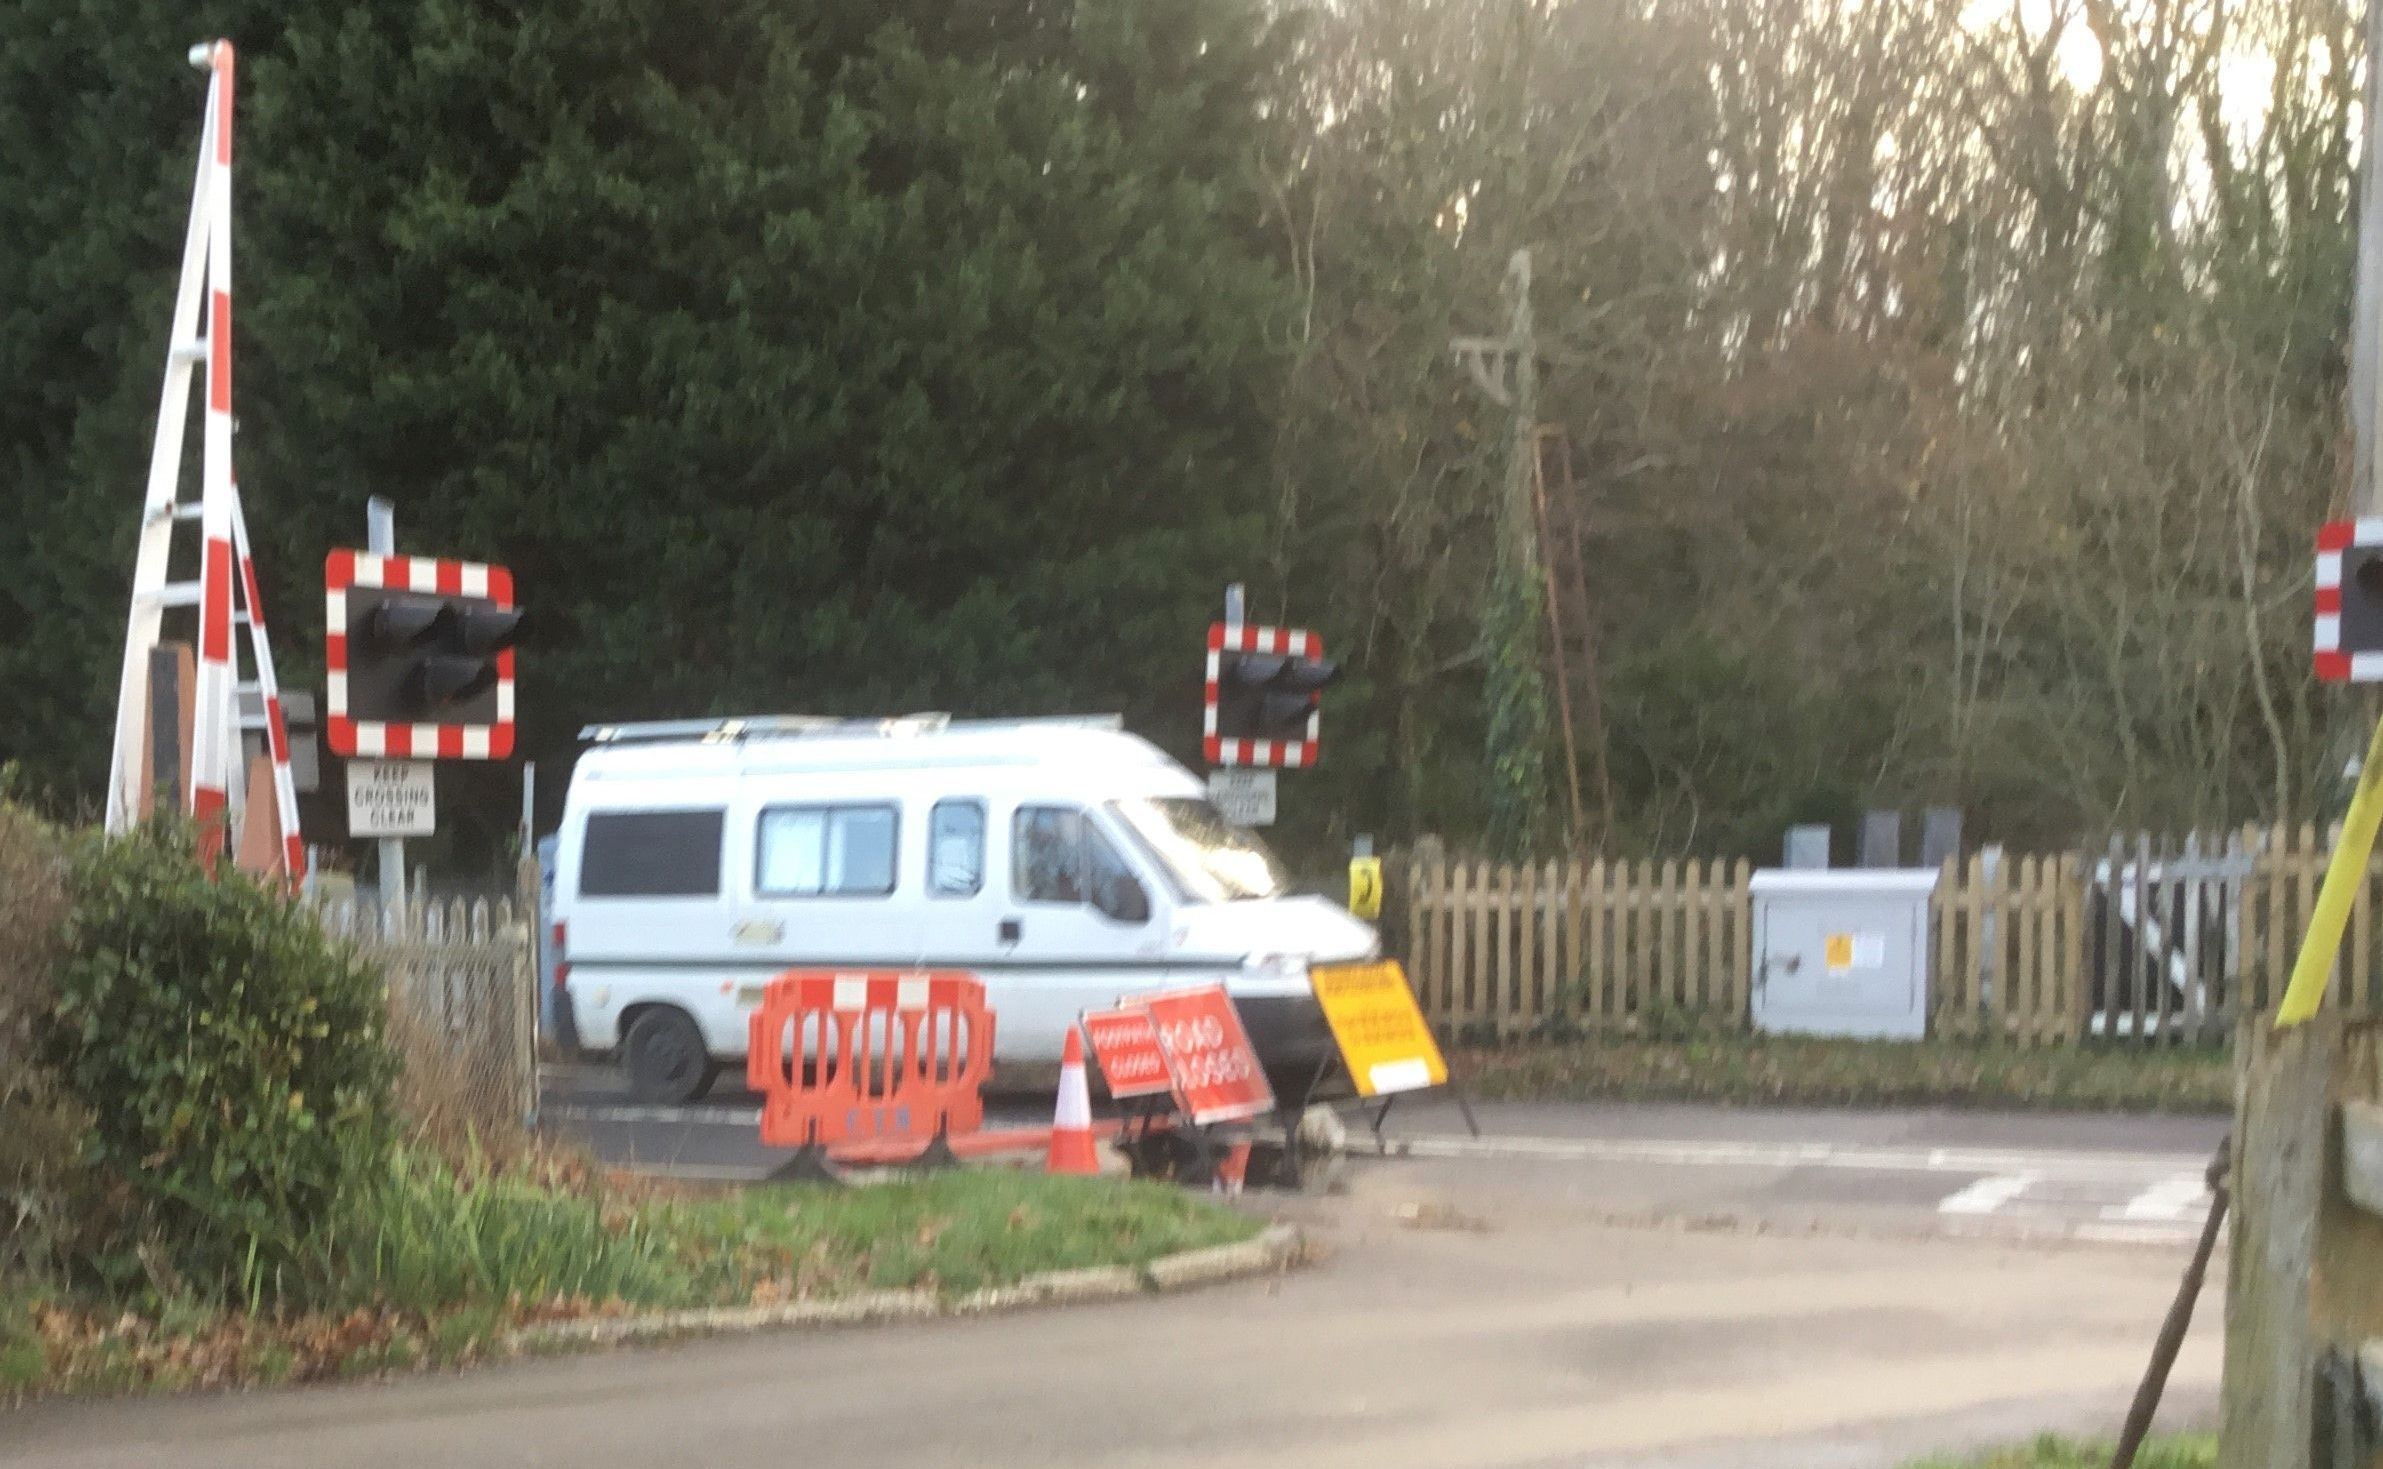 A vehicle appears to cross the closed level crossing on Frost Lane in Hythe.